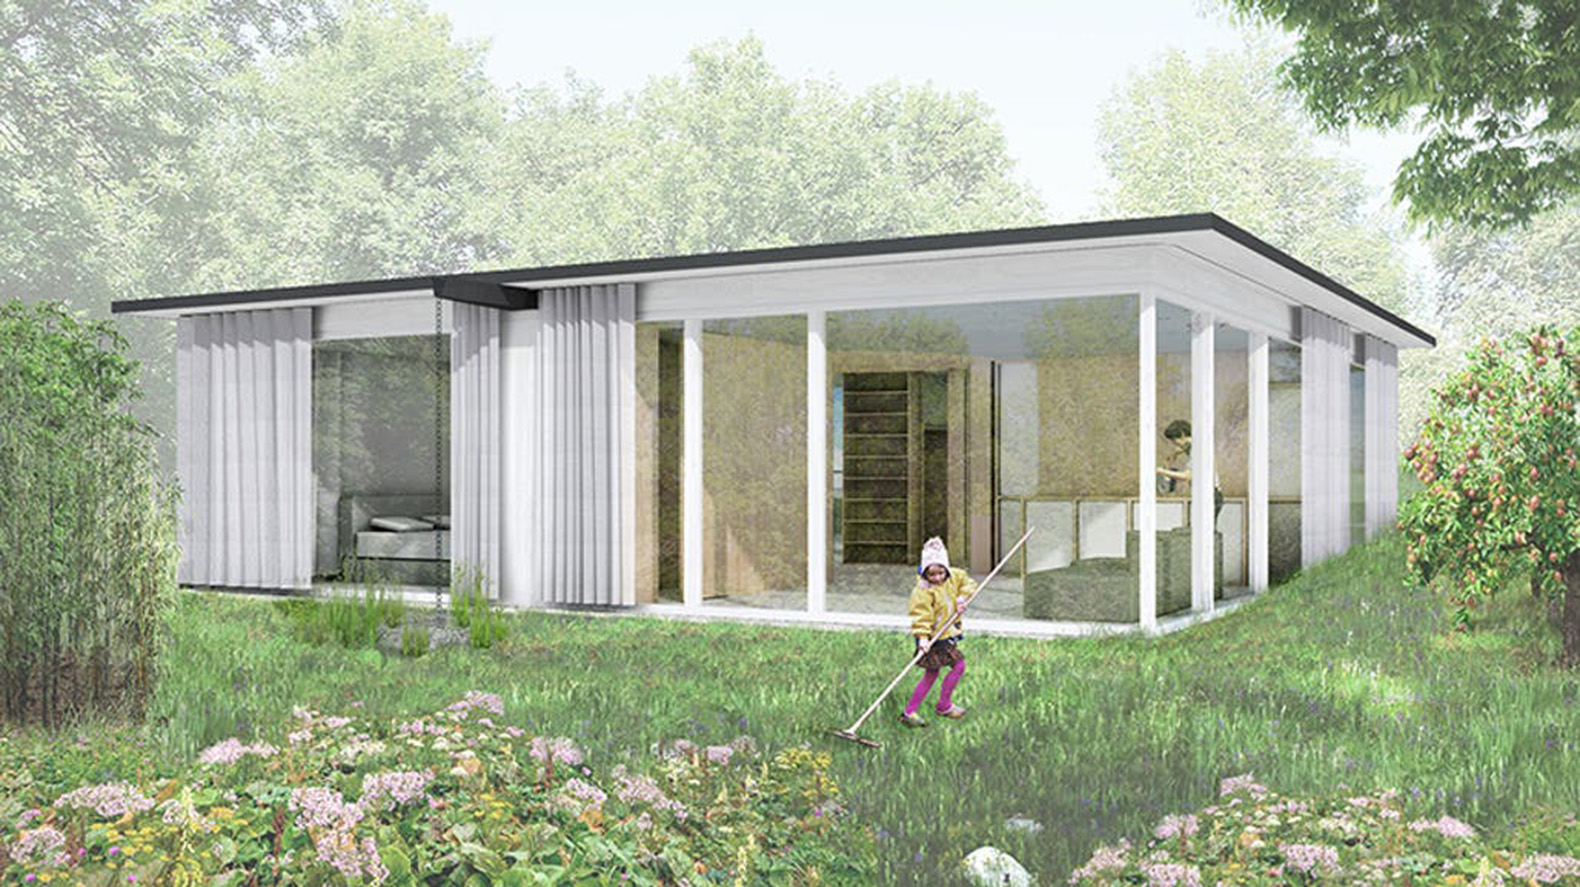 This prefab movable house can be assembled anywhere